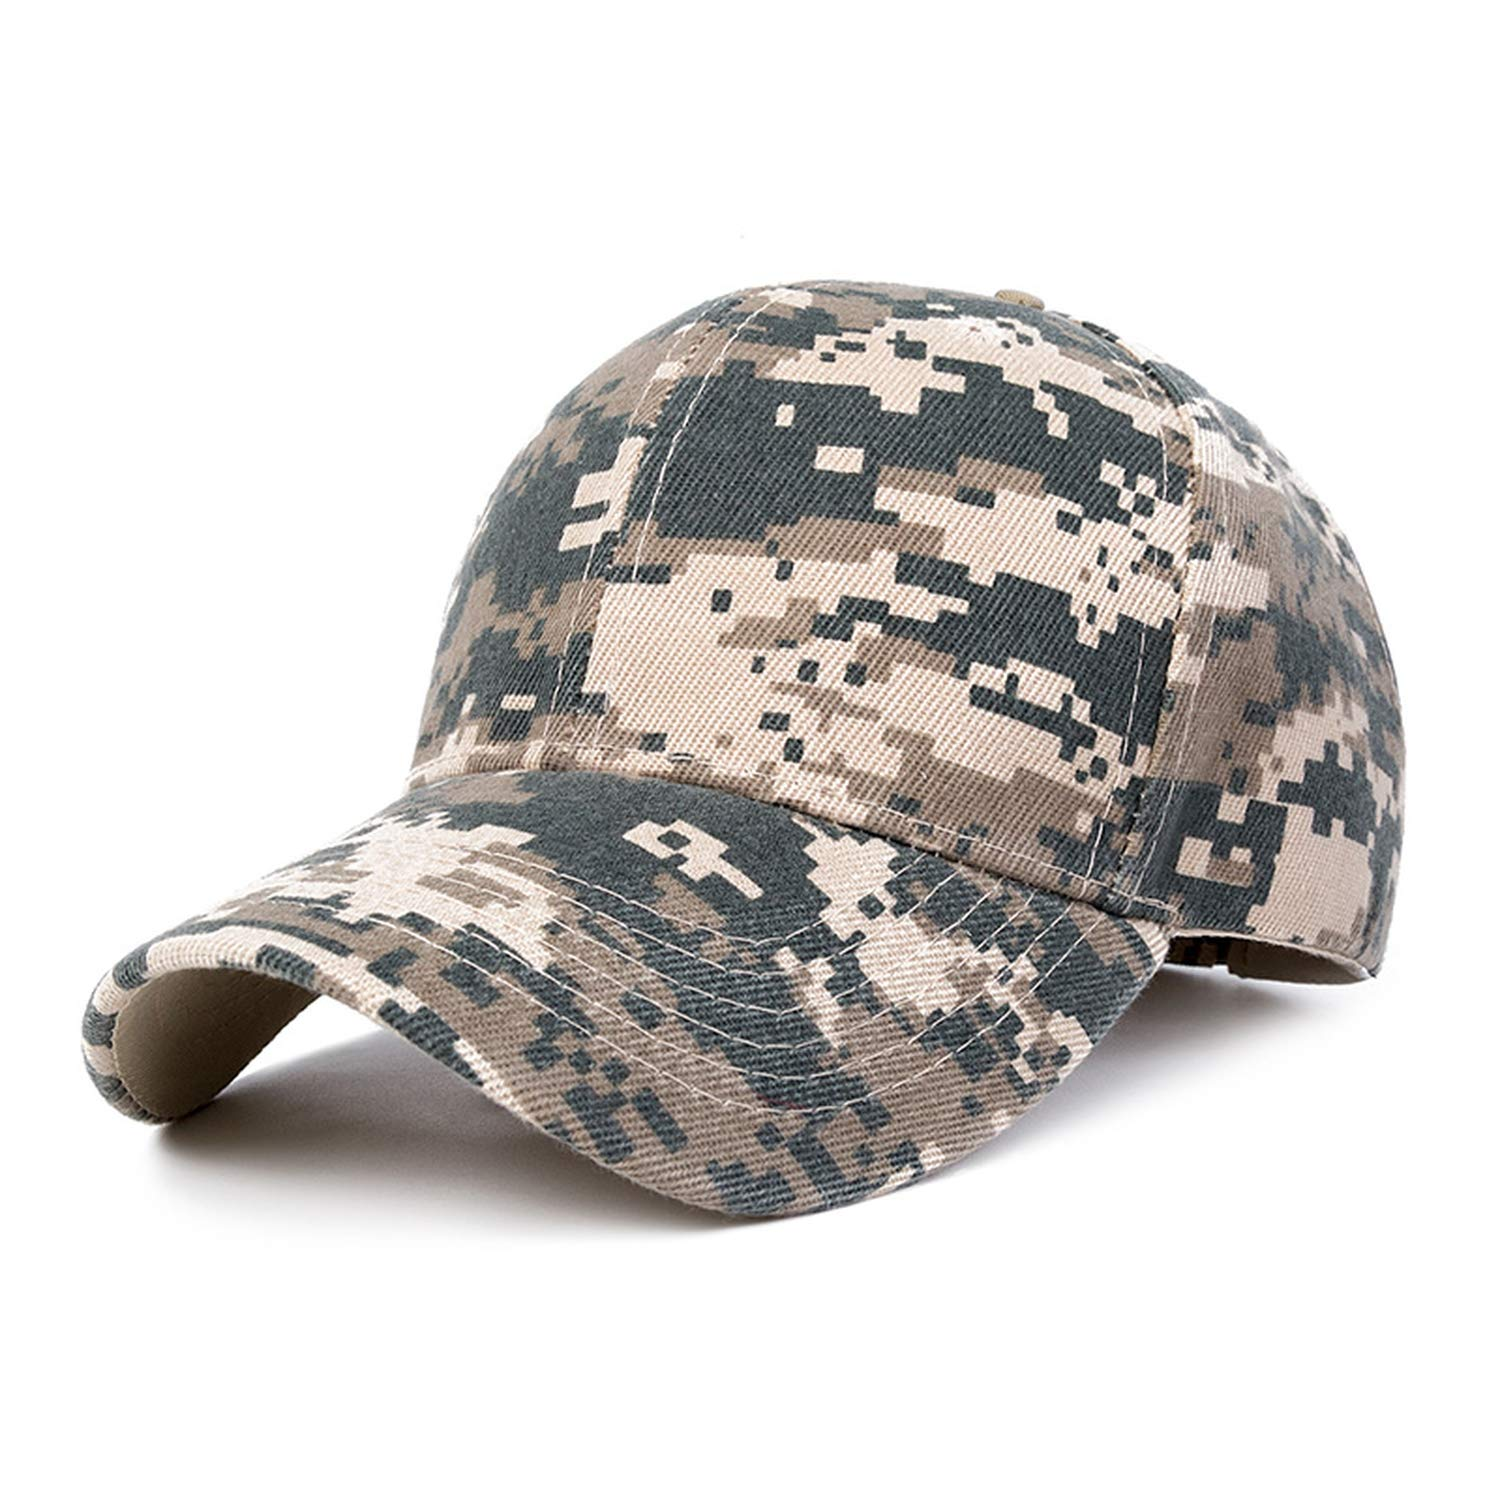 Men Summer Mesh Cap Tactical Camouflage Hat for Men Women Dad Hat Caps at Amazon Womens Clothing store: